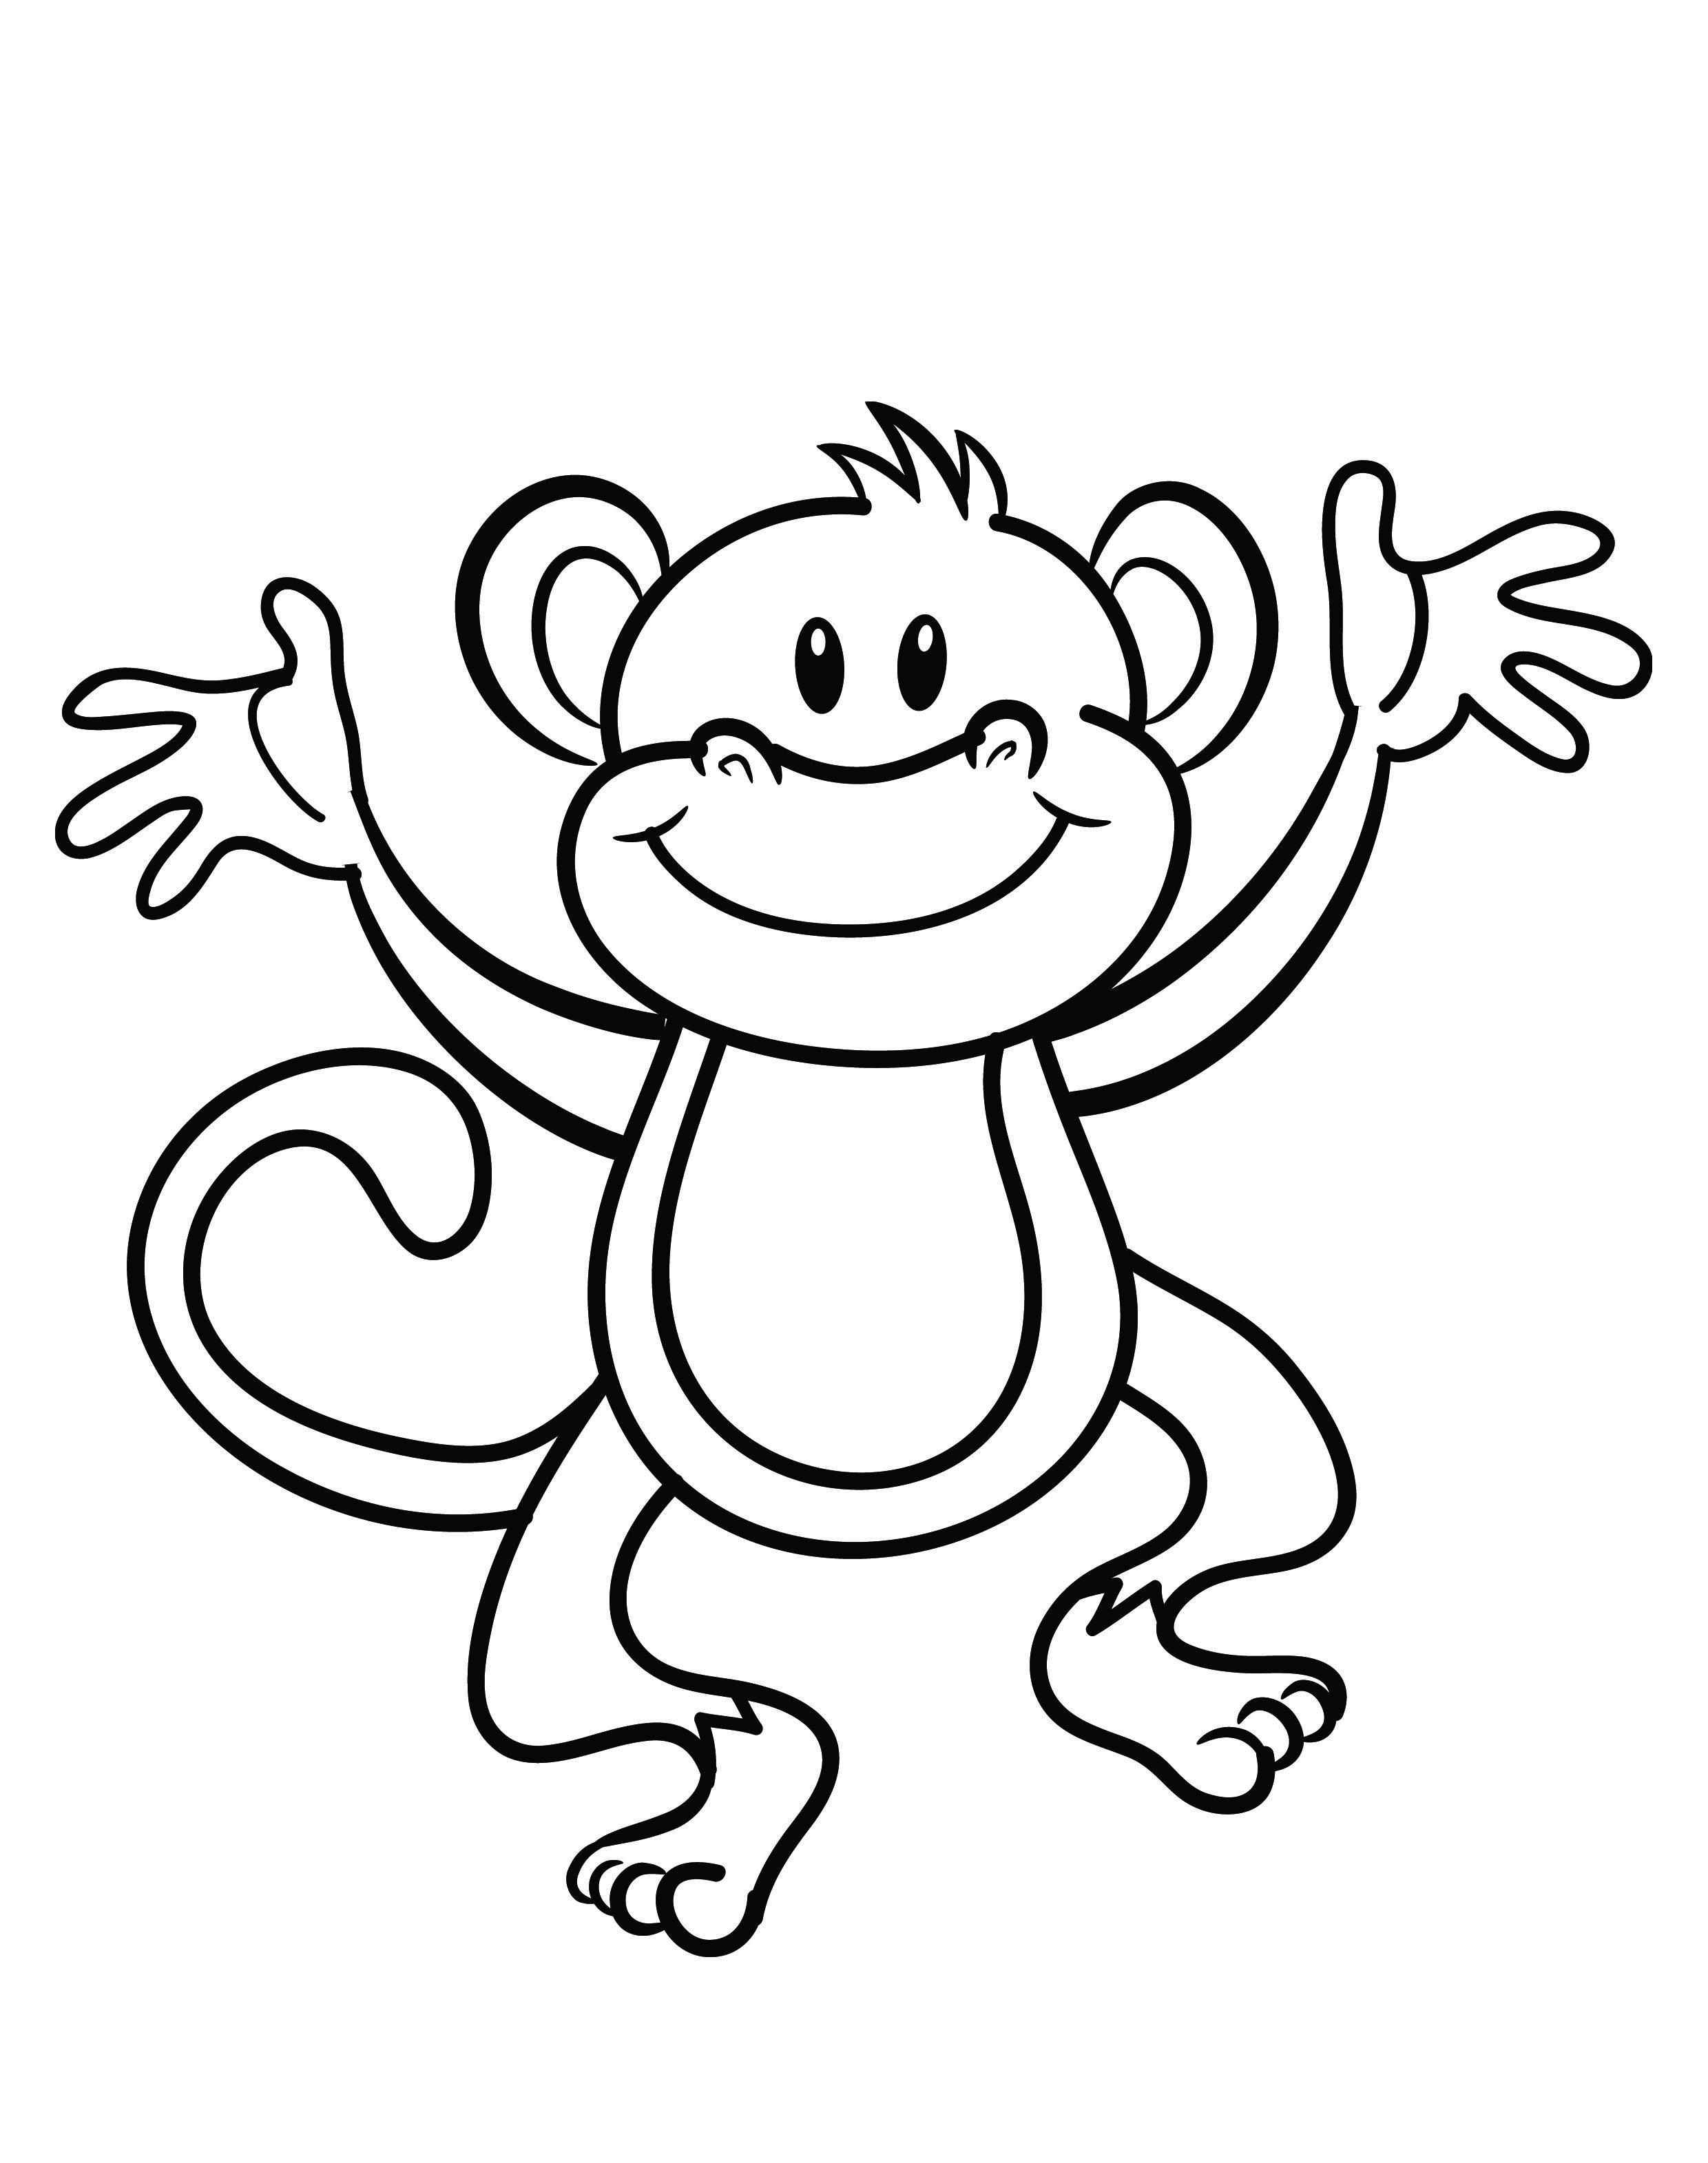 colouring pictures of monkeys coloring pages of monkeys printable activity shelter monkeys pictures colouring of